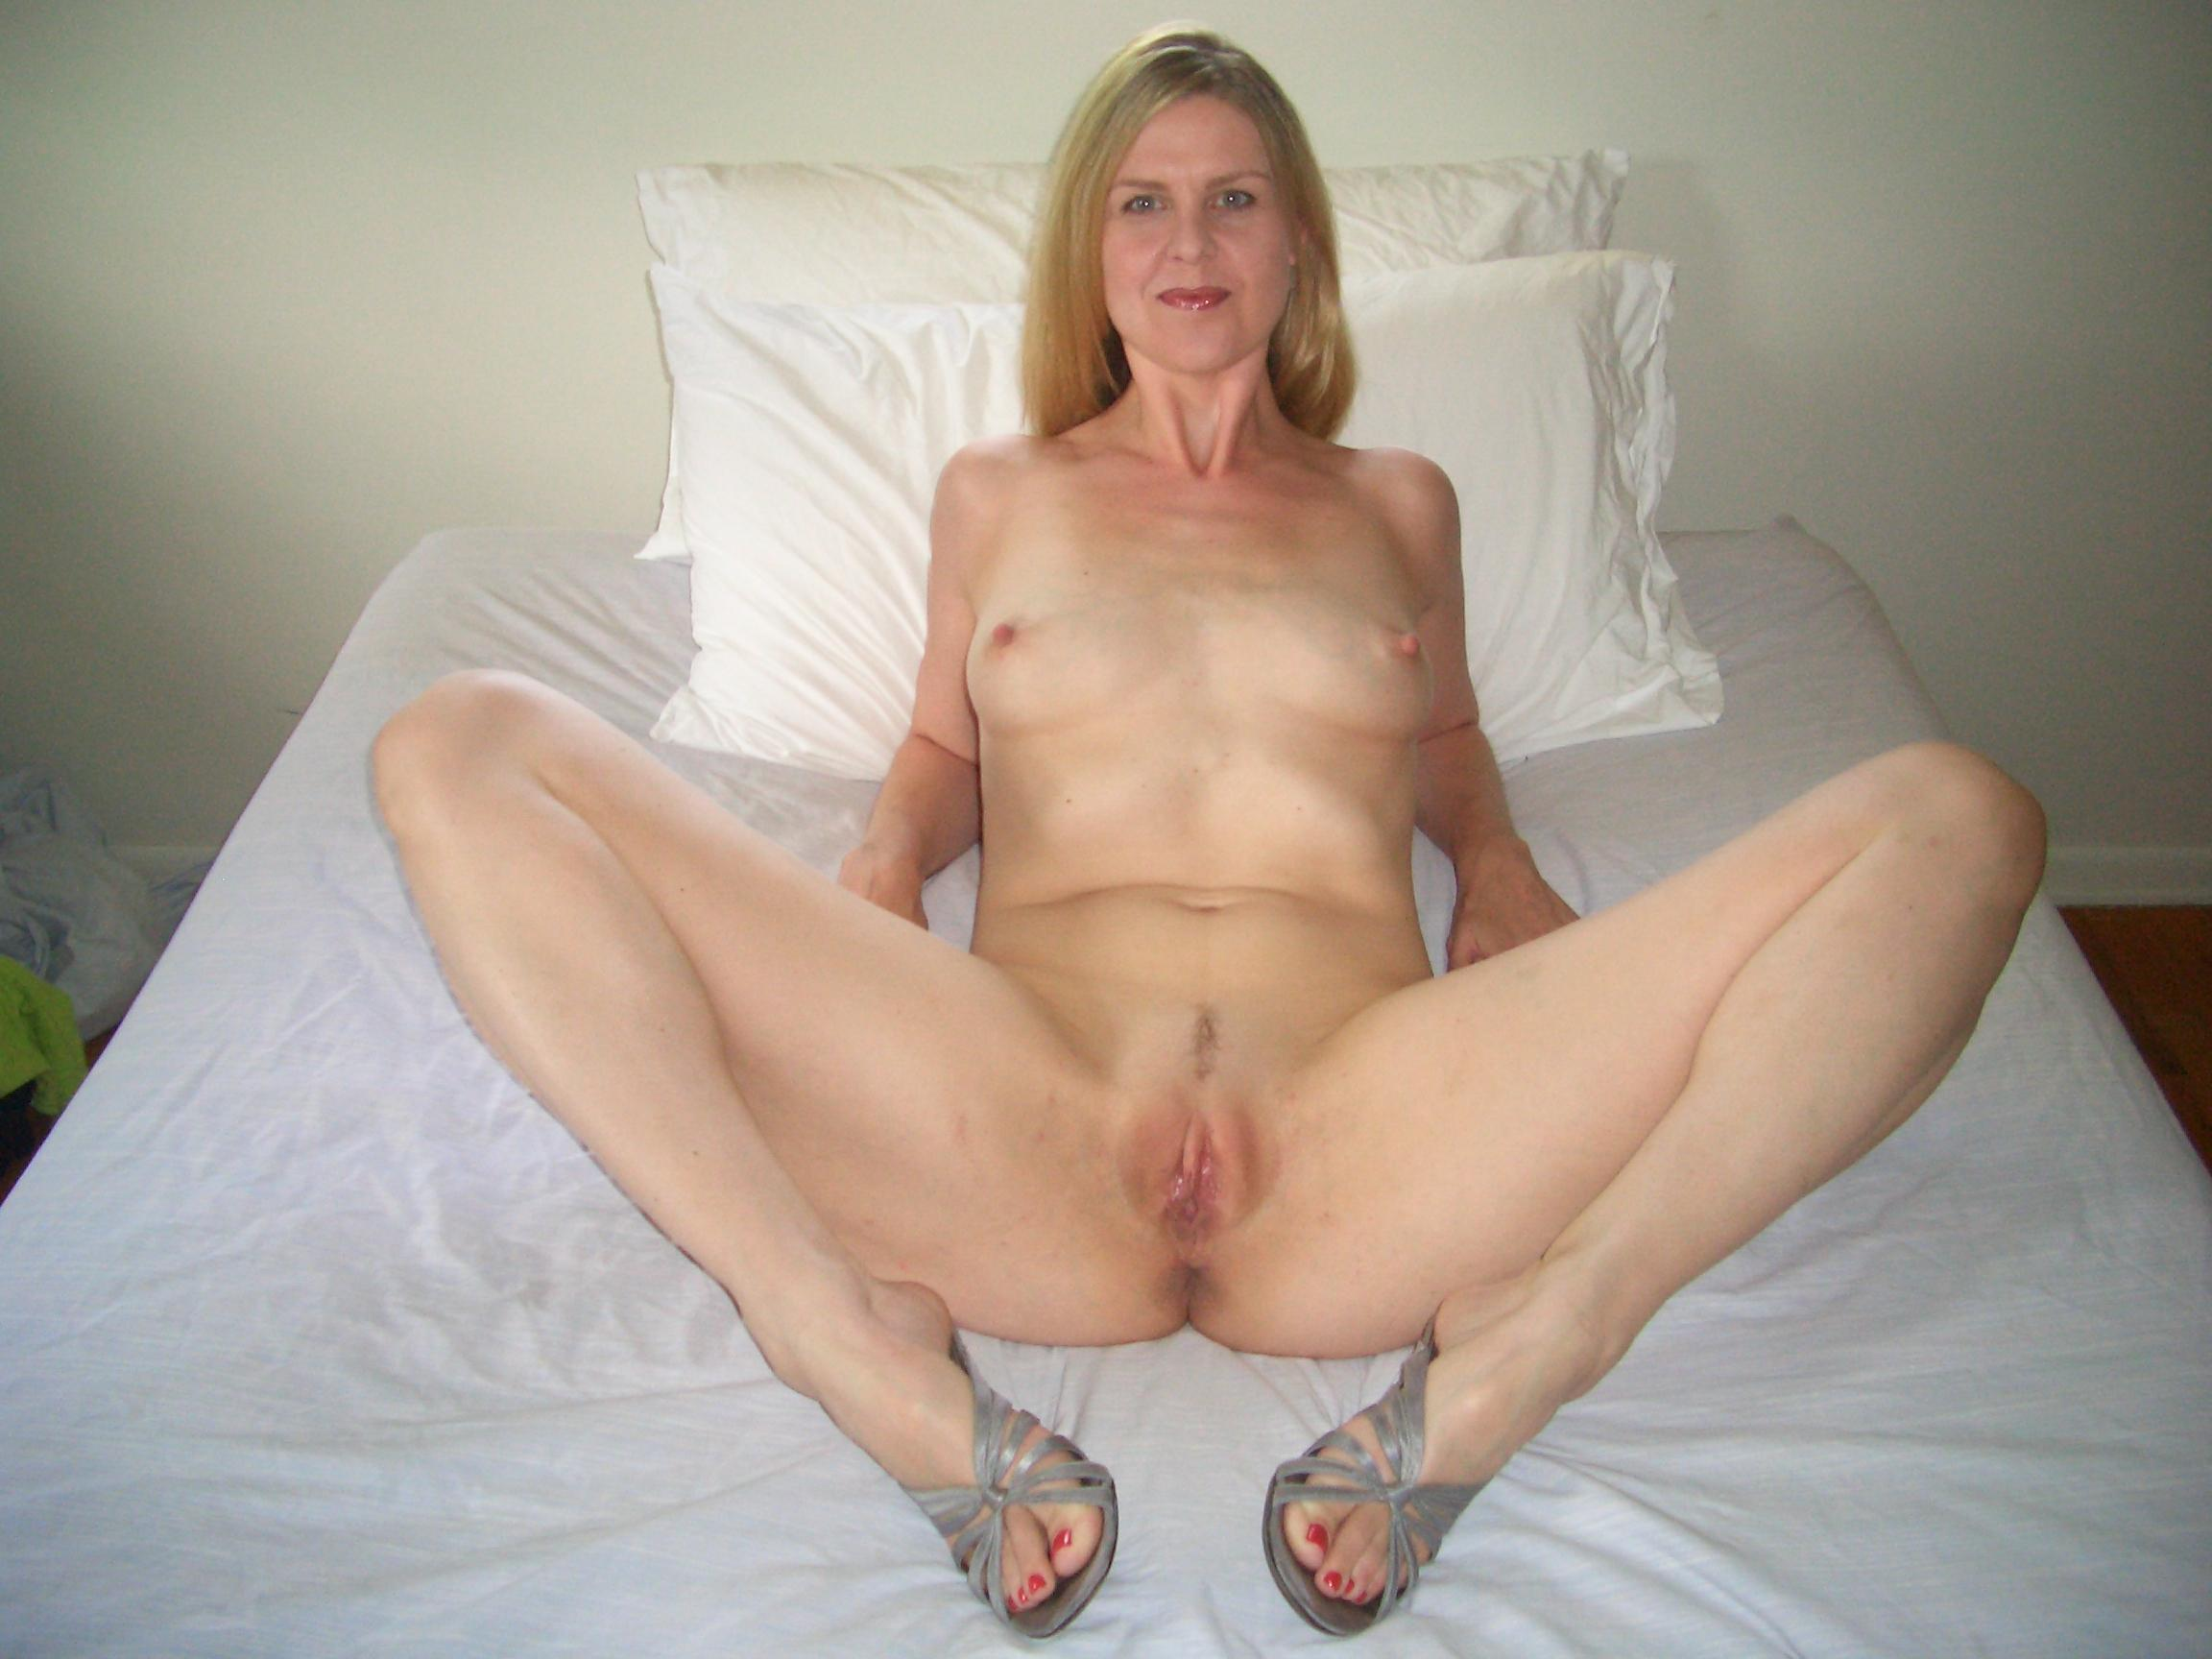 Mature nude amateur housewife